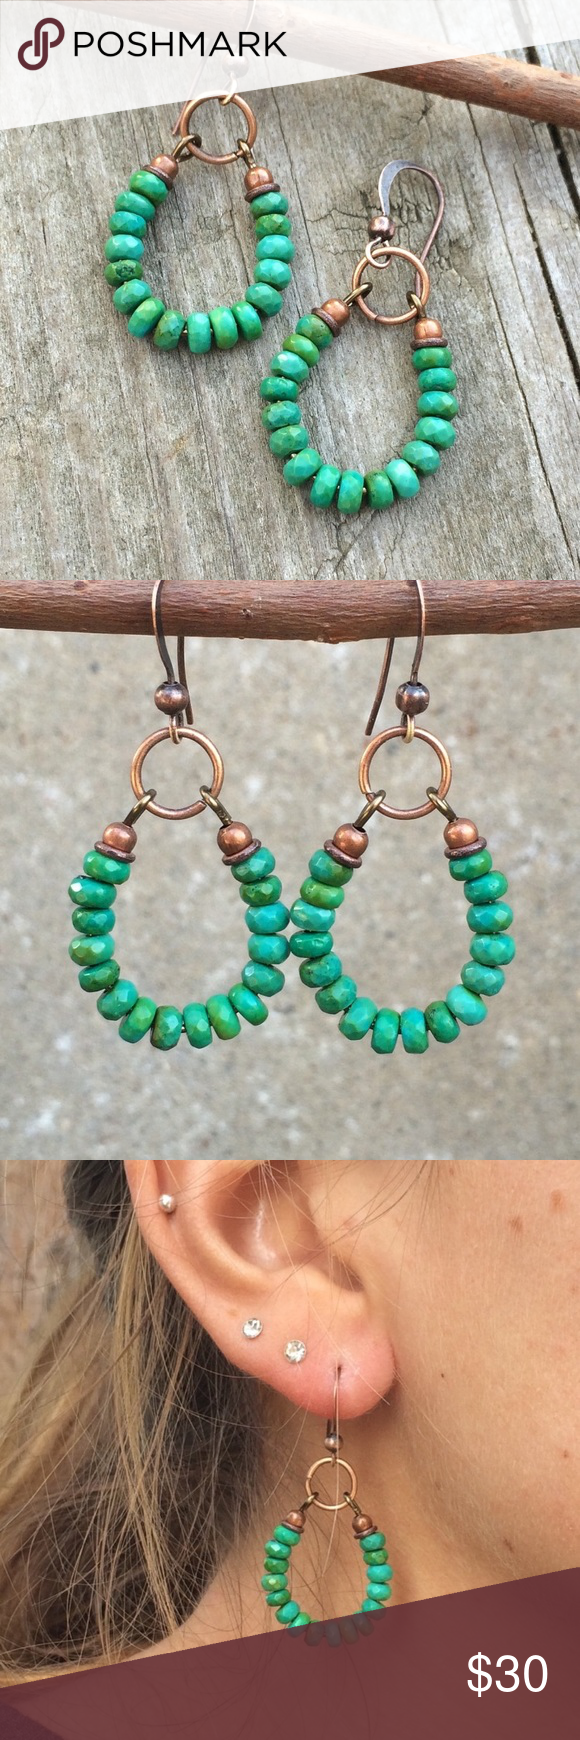 Beautiful handmade faux turquoise hoop earrings Purchased from an Etsy artisan (now sold out). Just gorgeous but I never change from my everyday earrings. I tried to capture the color in the last pic (first few are from Etsy) and I would say they are a greener turquoise shade, not aqua. So beautiful and versatile. Copper accents. Never worn. handmade Jewelry Earrings